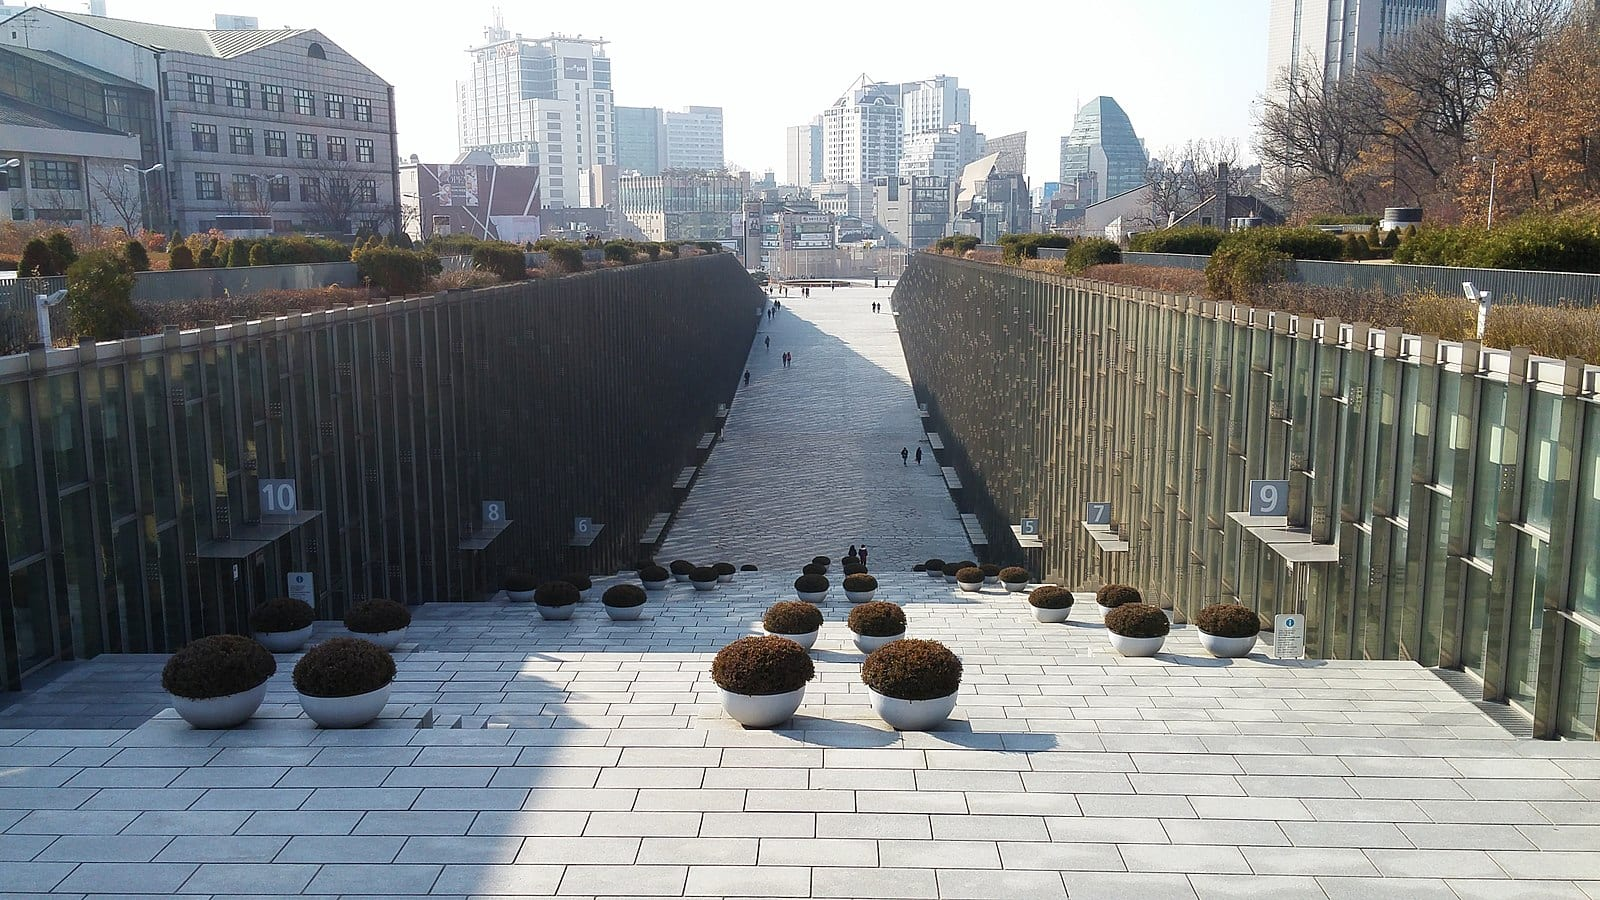 Ewha Woman's University Campus in Seoul, South Korea | ©Wikimedia Commons